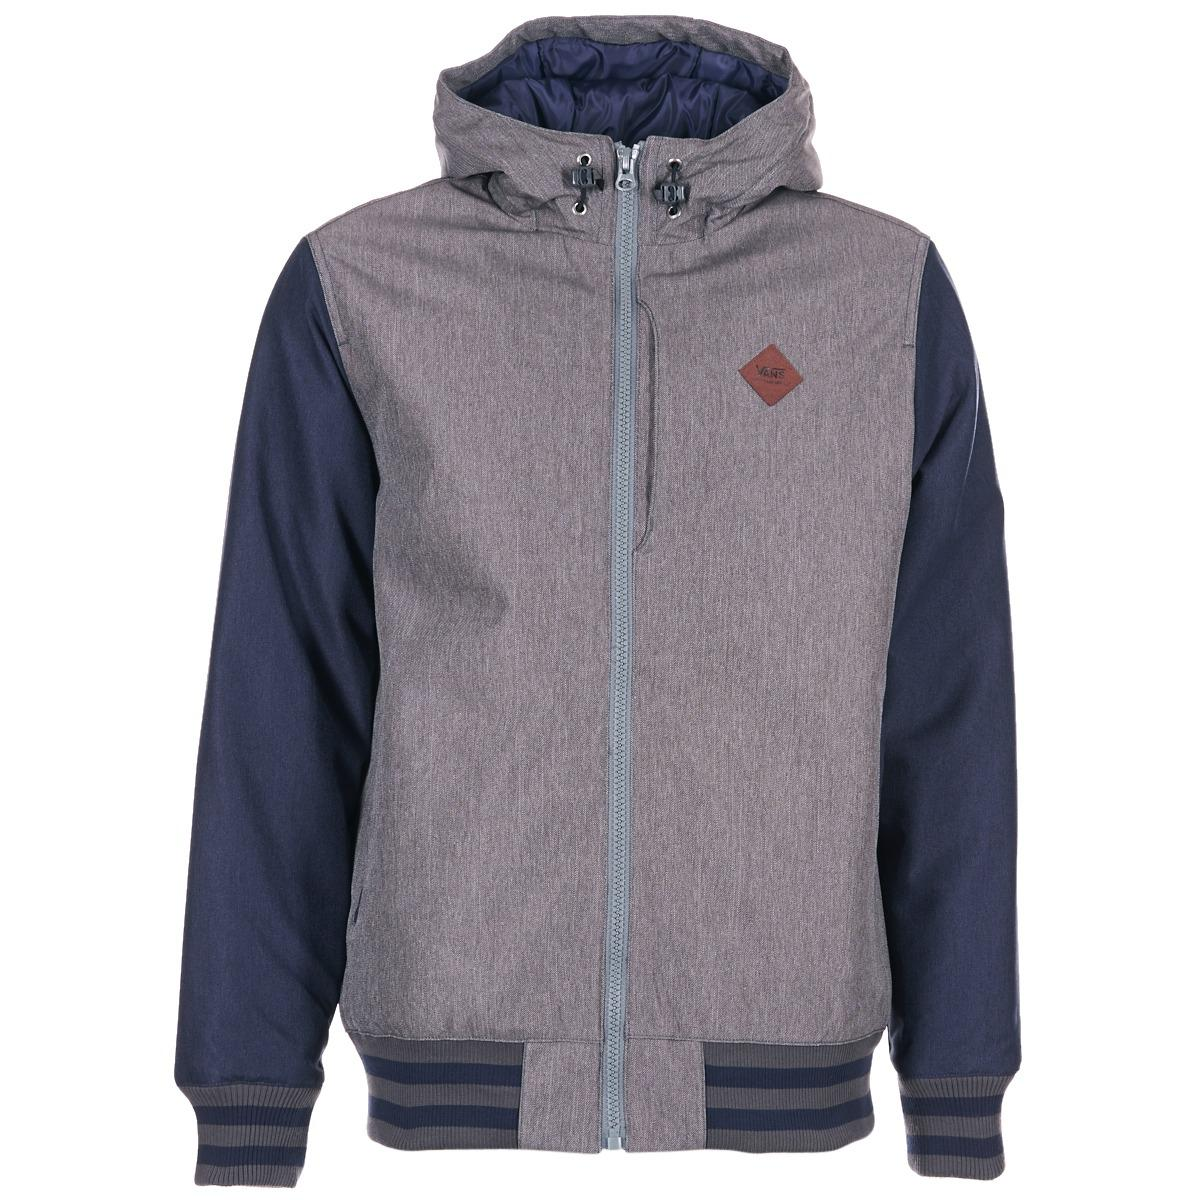 2e3fd51749 Vans Rutherford Mte Jacket in Gray for Men - Lyst